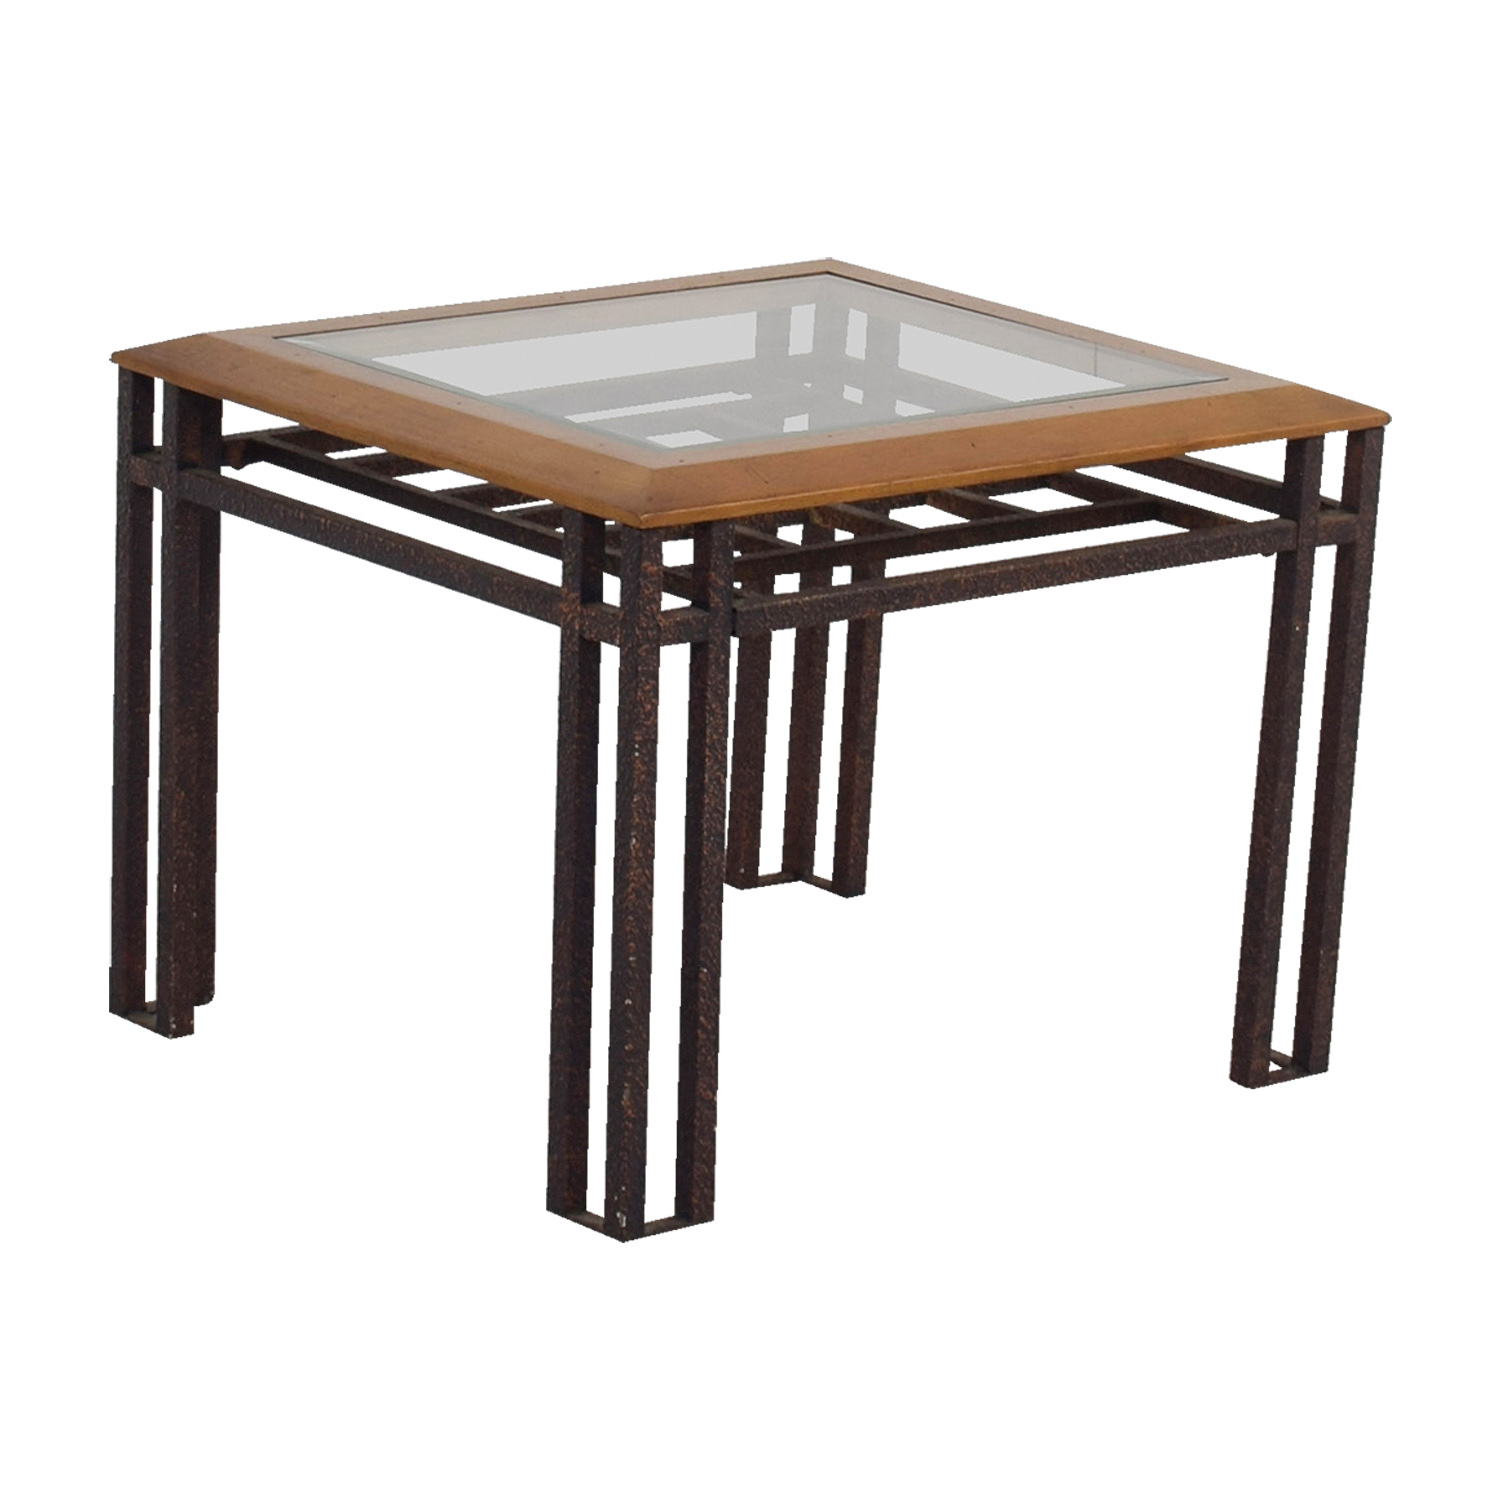 Rustic Wood And Glass Coffee Table 88 Off Rustic Brass Wood And Glass End Table Tables